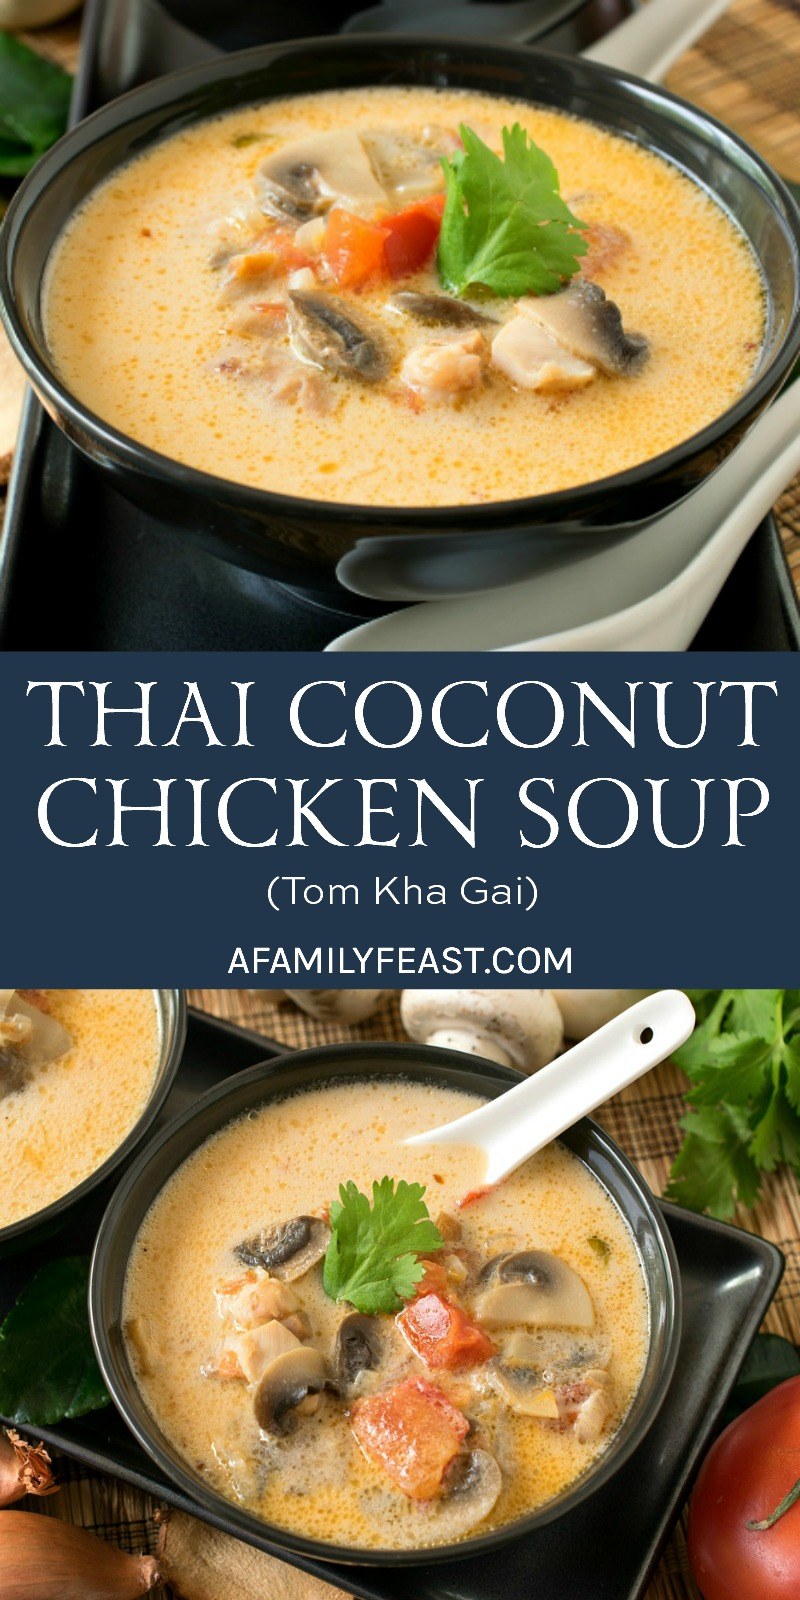 This Thai Coconut Chicken Soup (also known as Tom Kha Gai) is a classic Thai soup with a delicious and distinctive flavor.